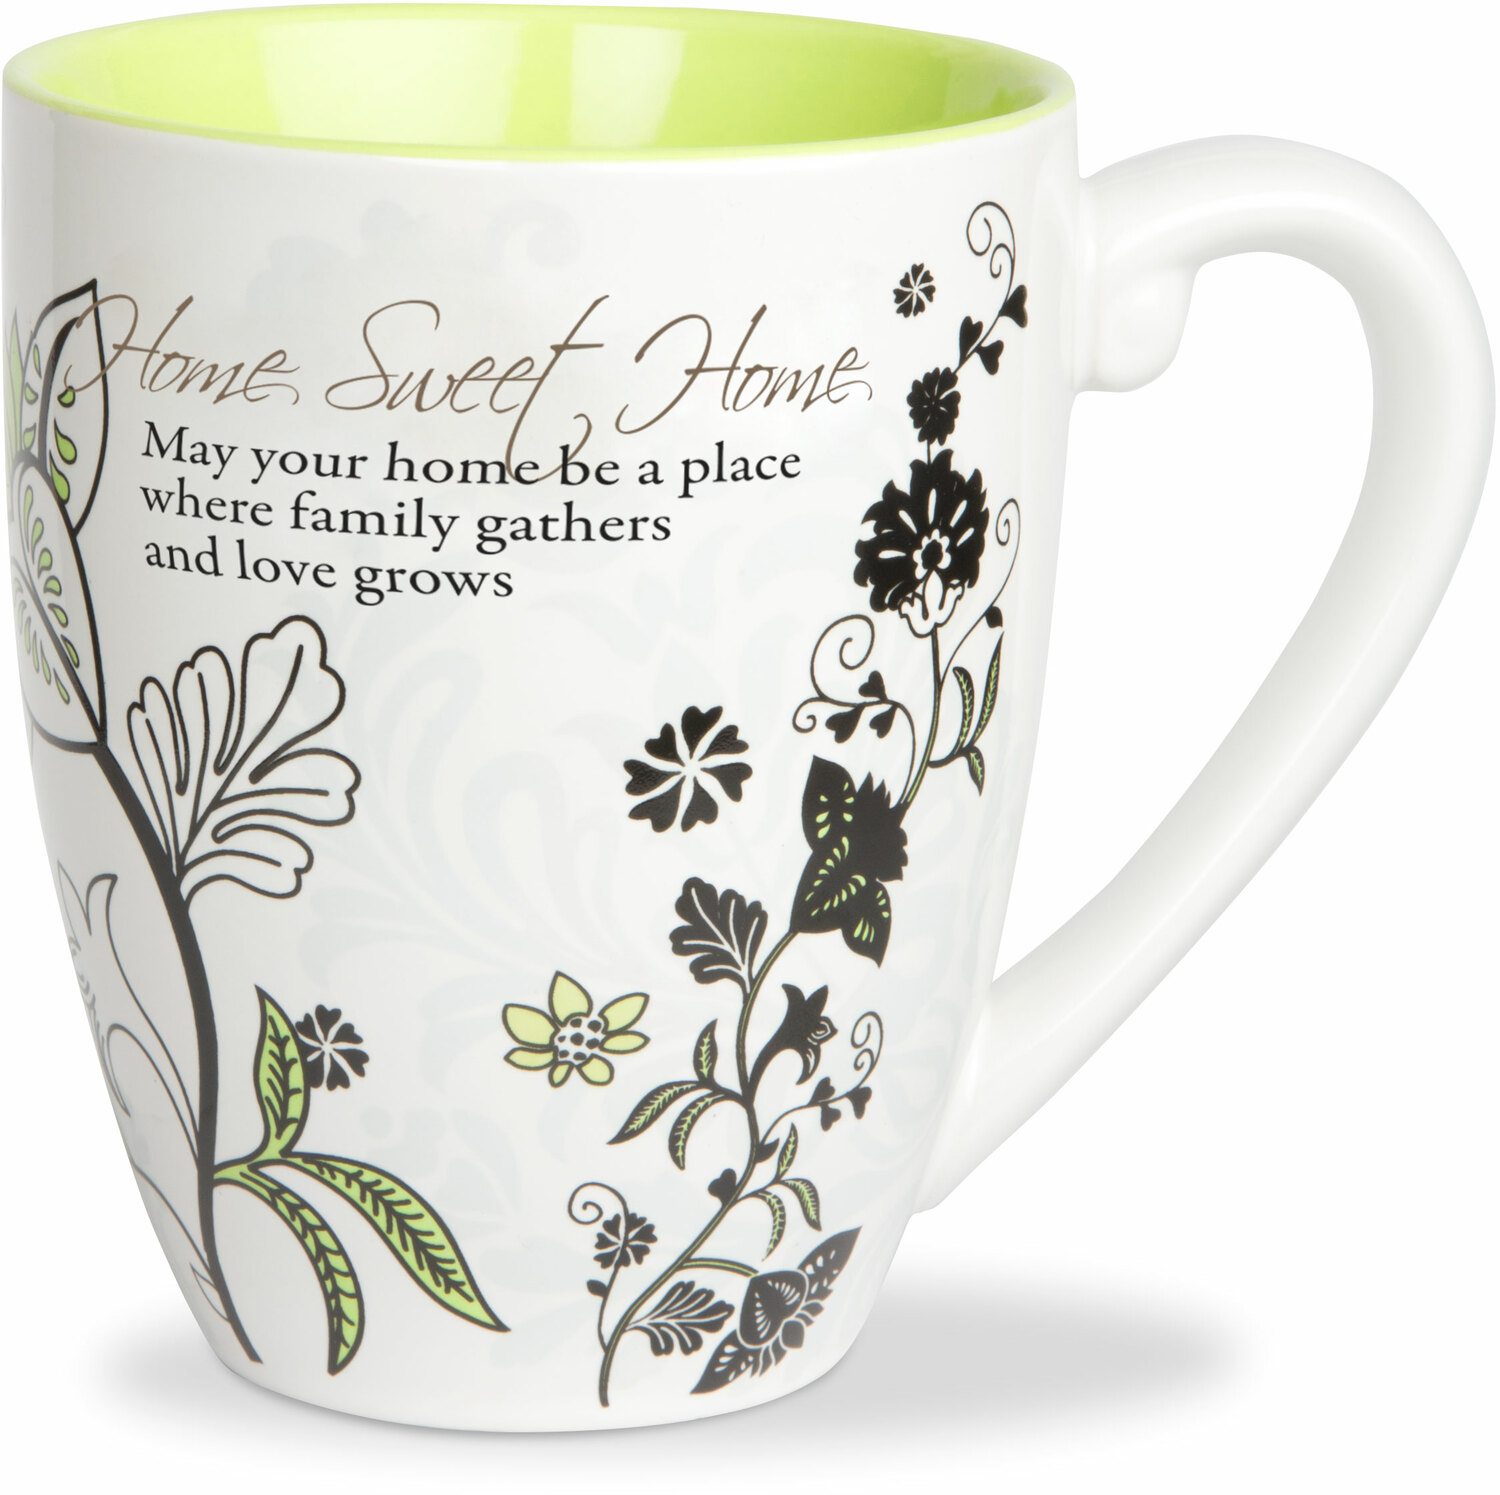 Home Sweet Home by Mark My Words - Home Sweet Home - 20 oz Cup